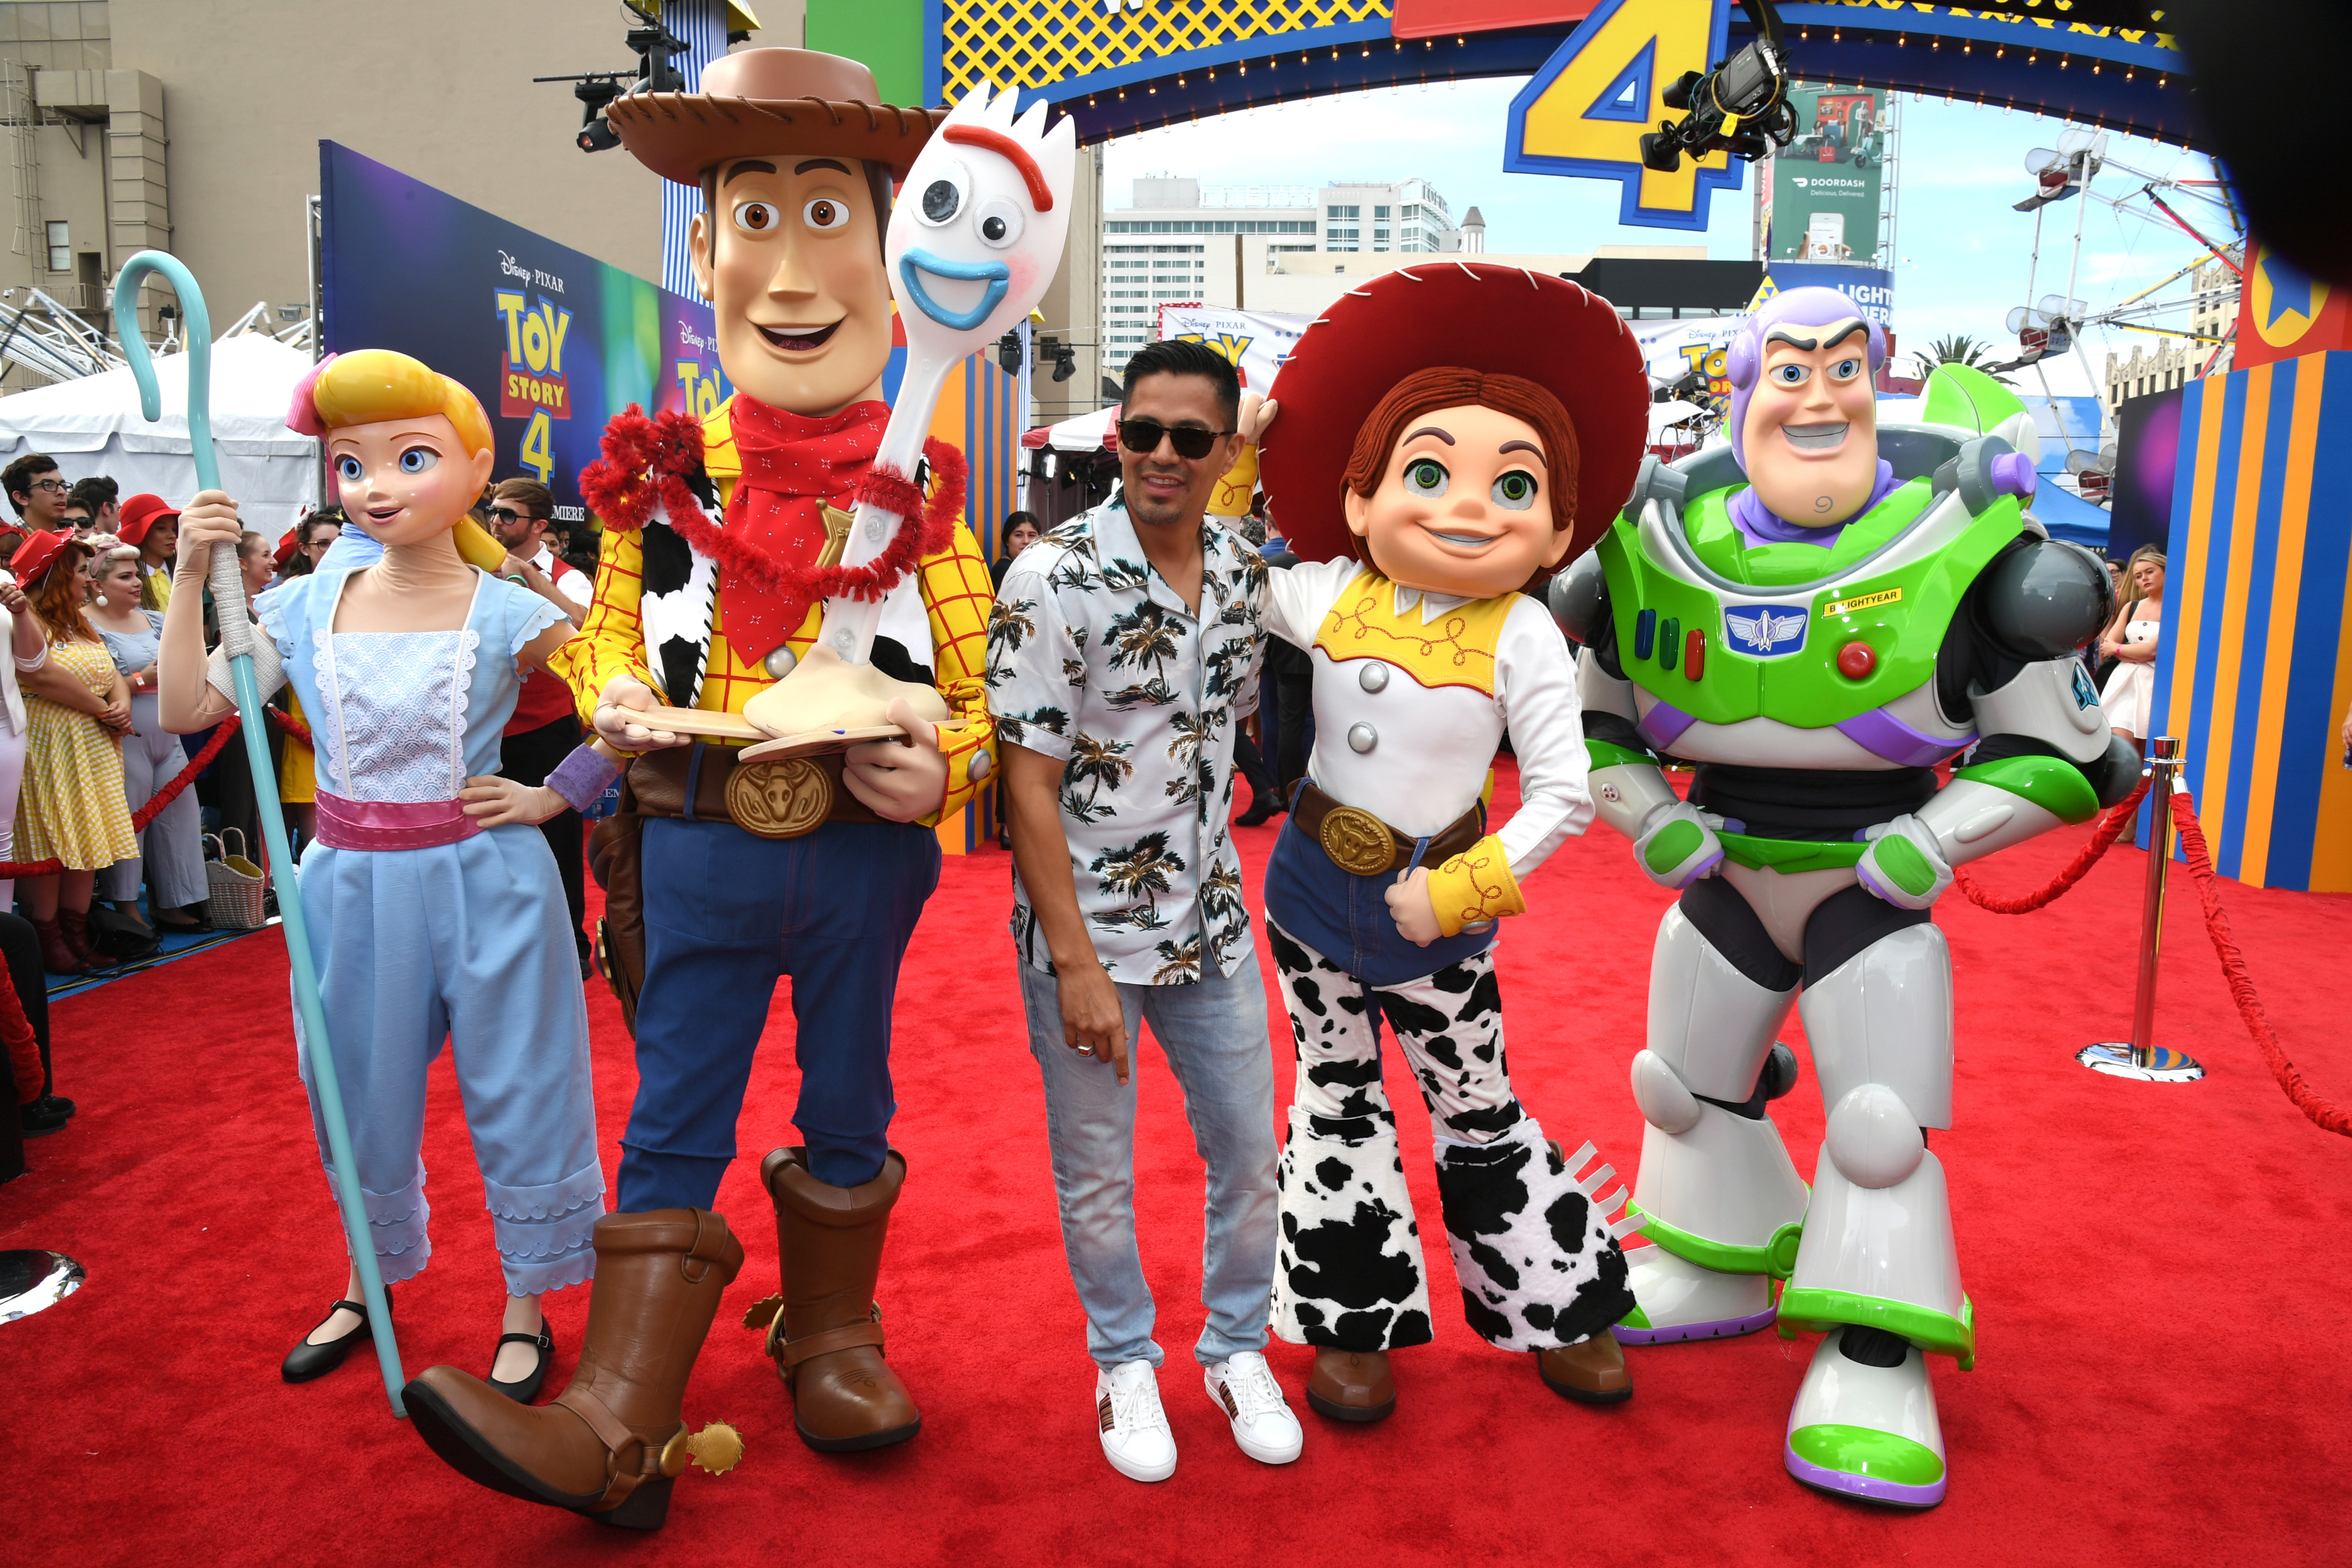 Wondering if Bonnie's Dad in 'Toy Story 4' Is Latino? Pixar Producer Jonas Rivera Hints at Yes